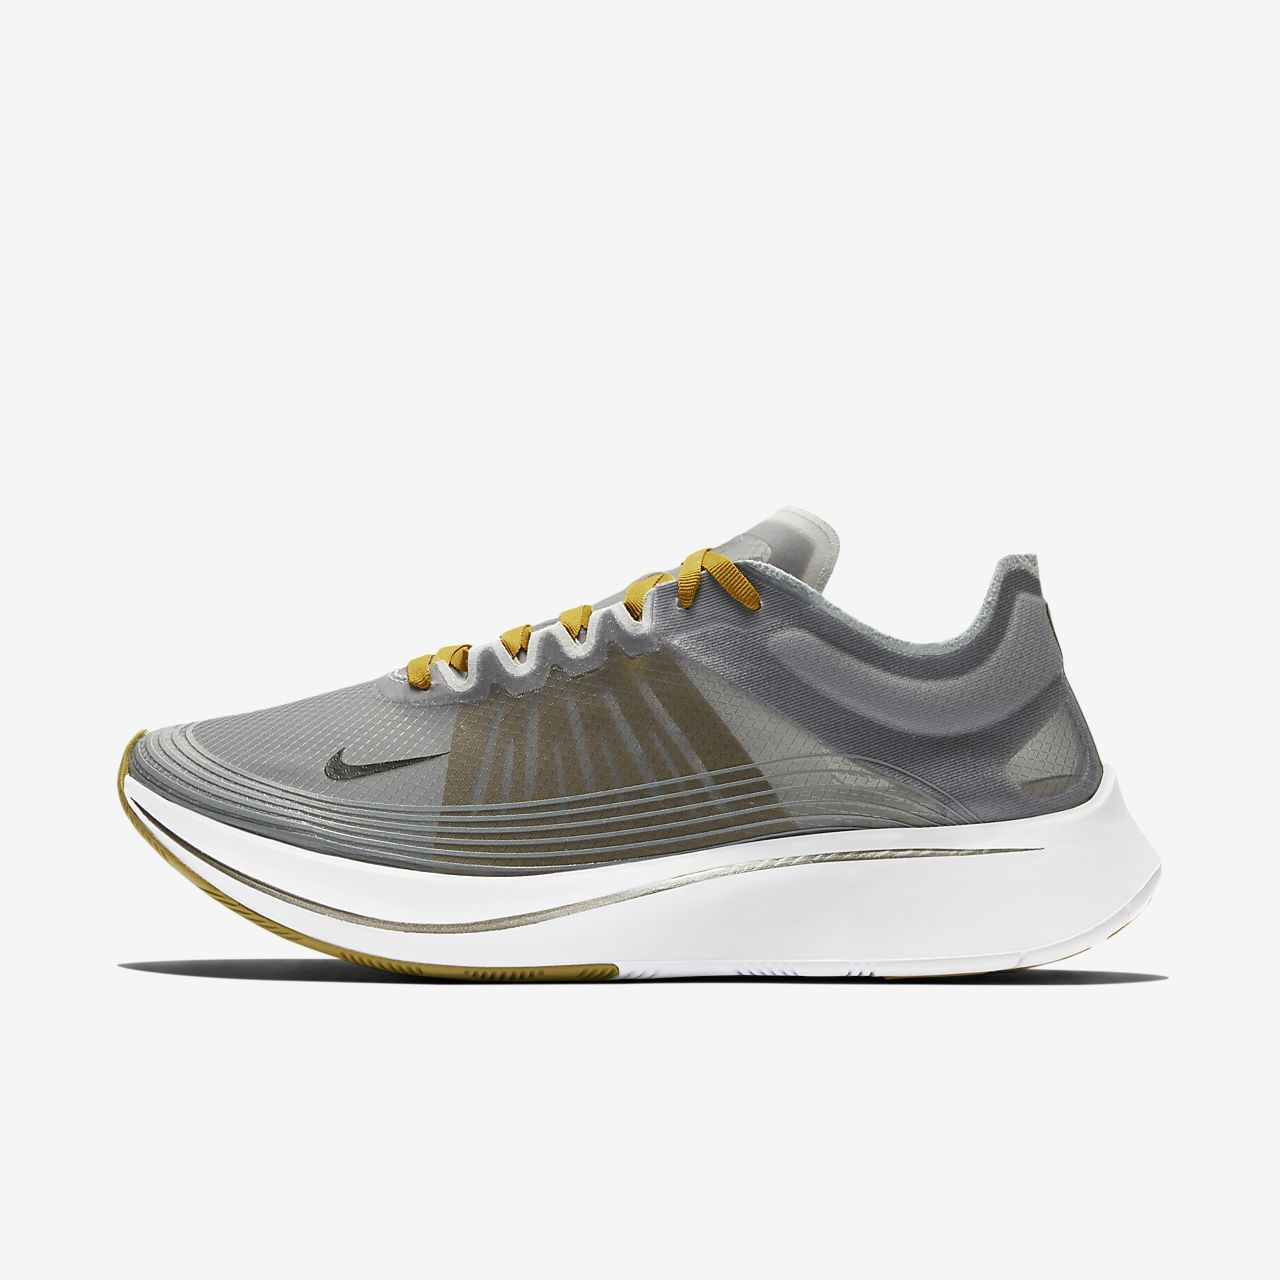 20f09c6c2a465 Nike Zoom Fly SP Running Shoe. Nike.com